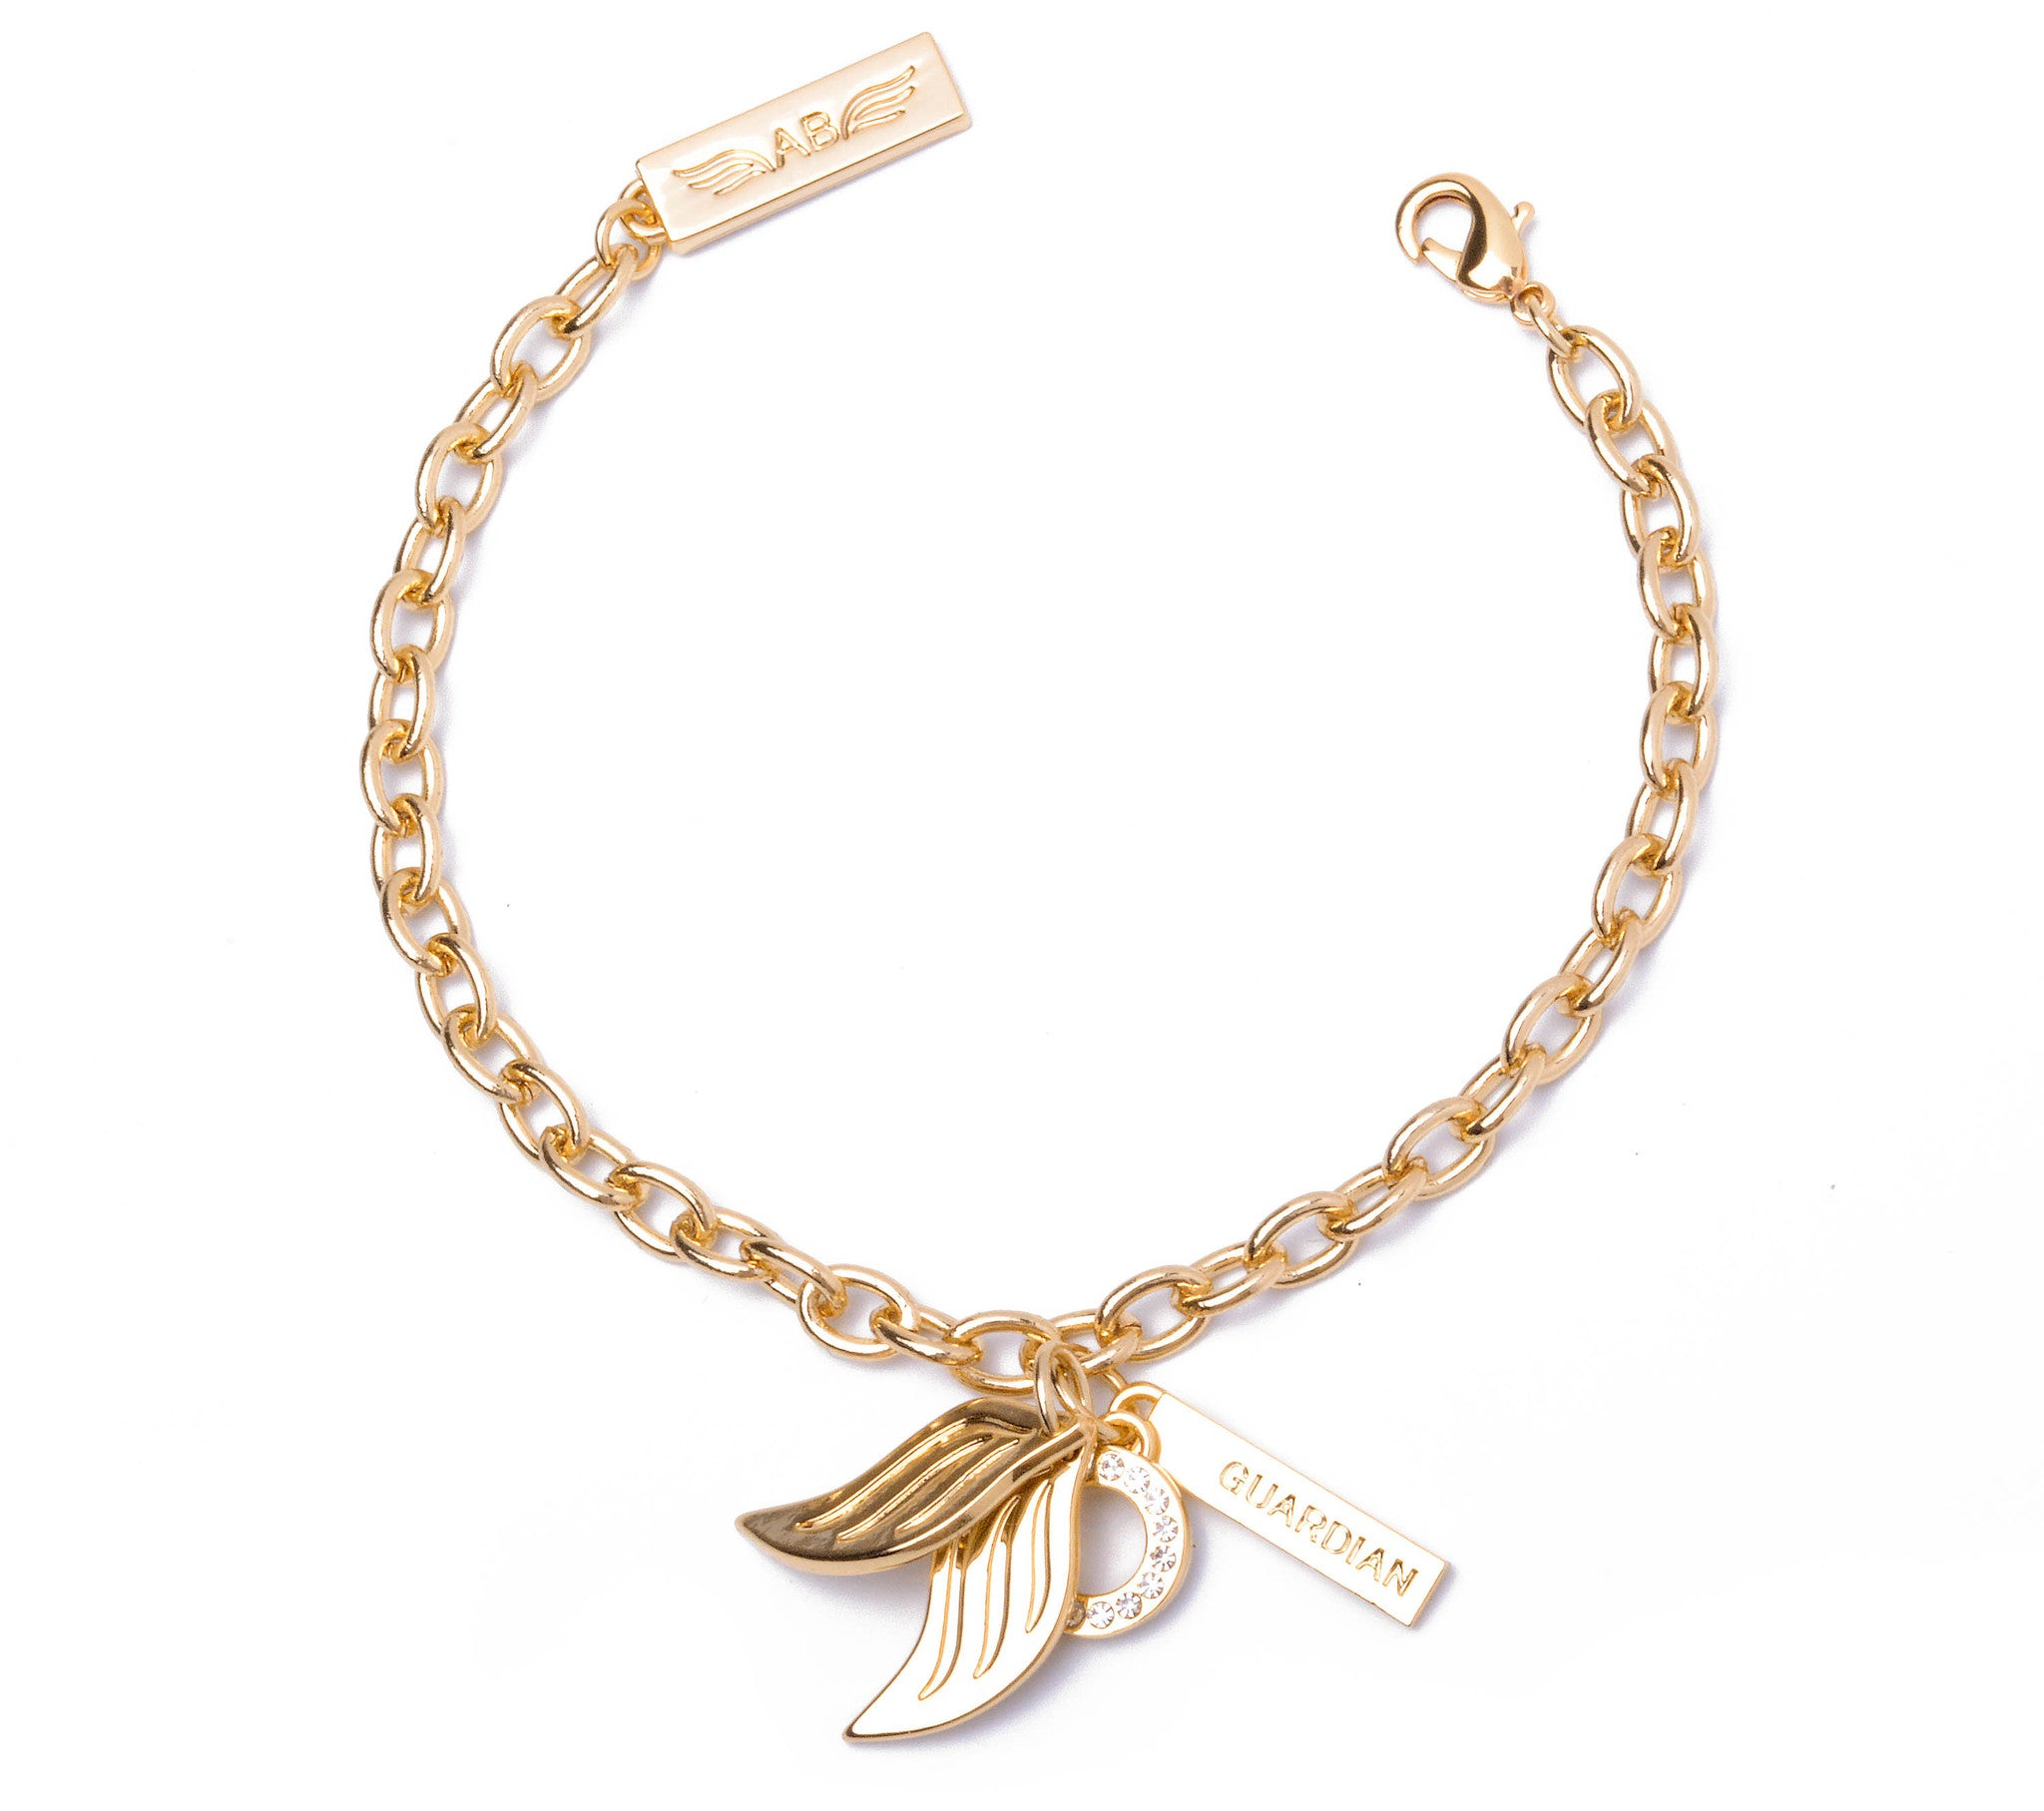 Guardian Angel Charm Bracelet Gold Ashley Brid